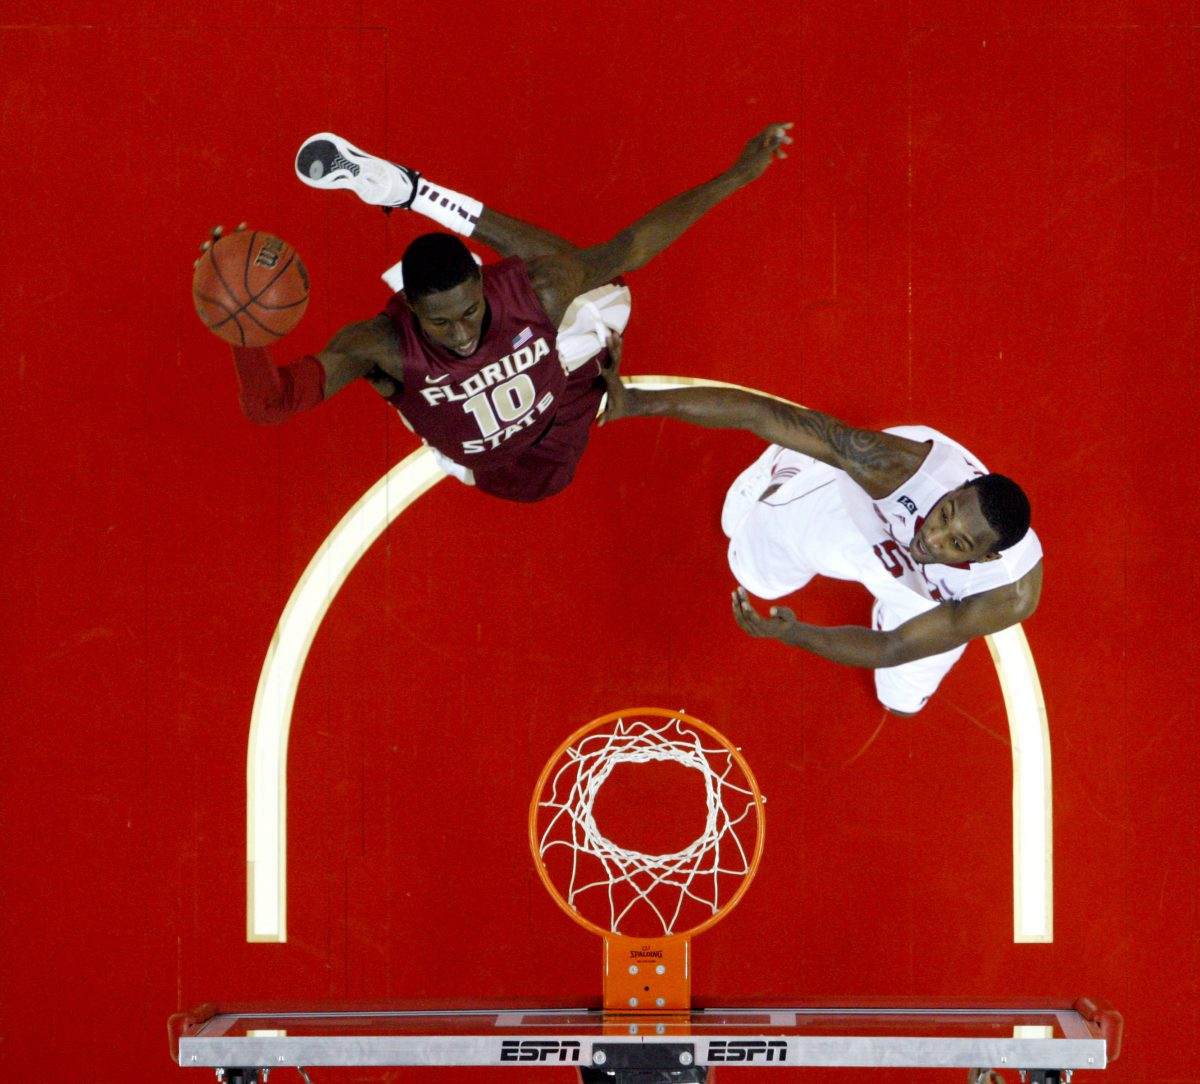 Florida State's Okaro White (10) dunks past North Carolina State's C.J. Leslie (5) in the second half of an NCAA college basketball game, Saturday, Feb. 18, 2012, in Raleigh, N.C. Florida State won 76-62. (AP Photo/The News & Observer, Ethan Hyman) MANDATORY CREDIT